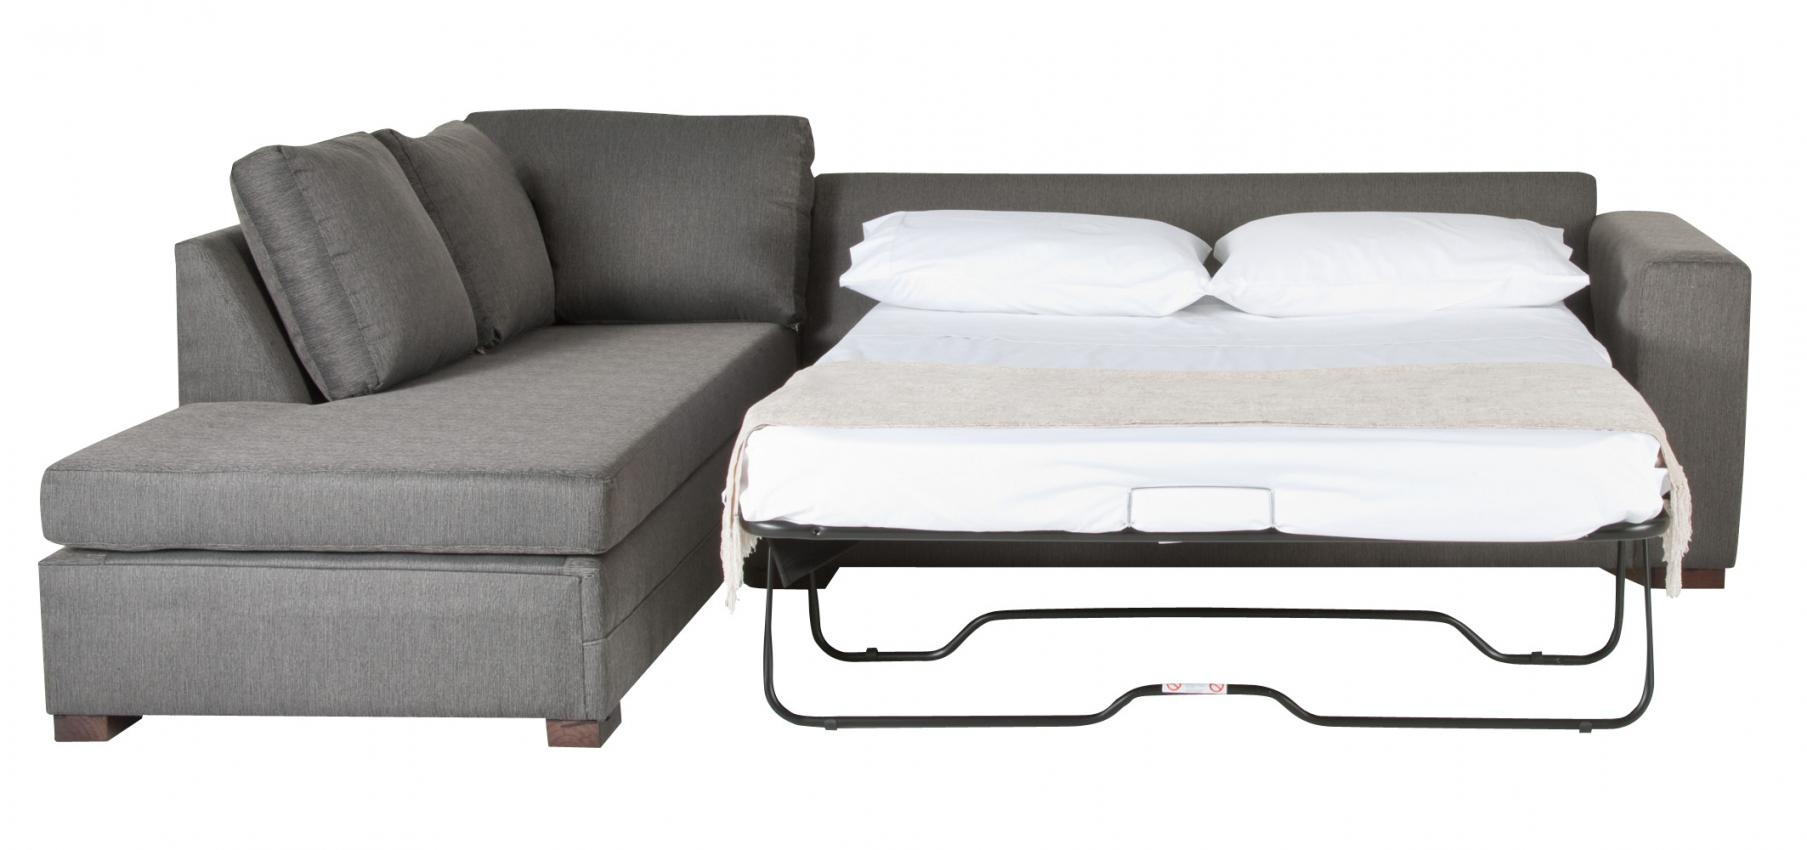 Most Comfortable Sleeper Sofa Mattress Regarding Comfort Sleeper Sofas (View 17 of 22)